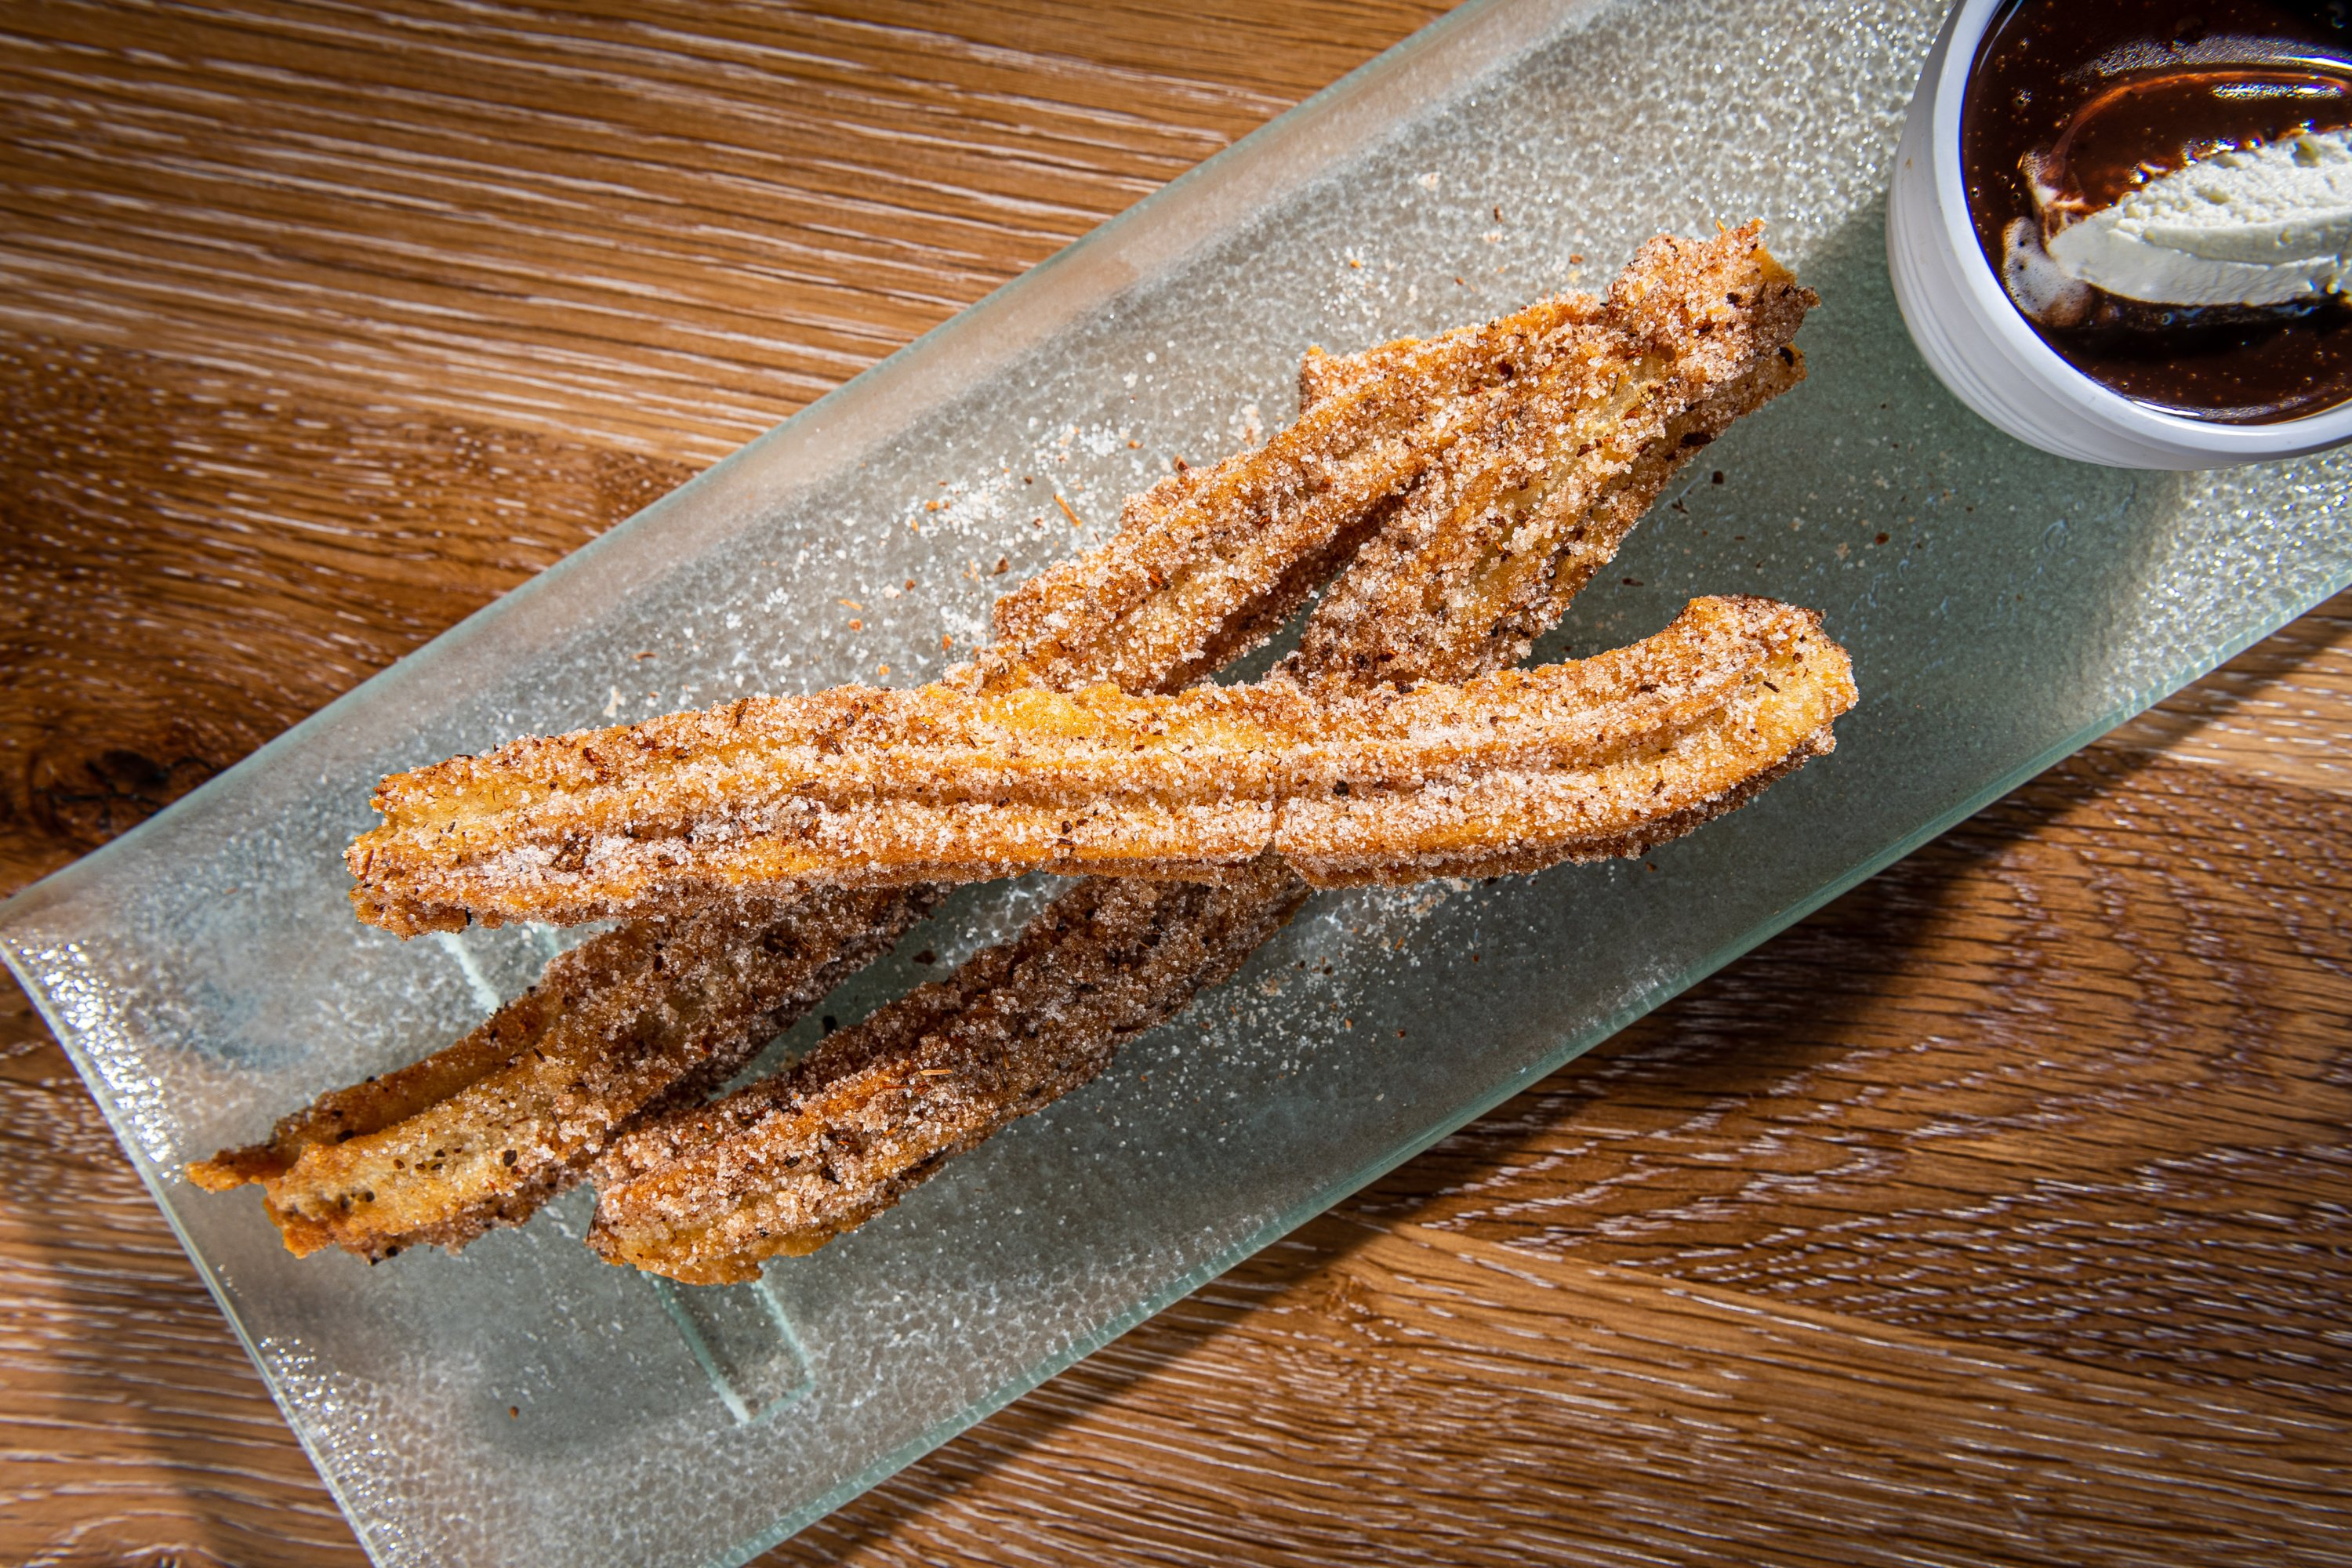 Flan and churros are on the dessert menu. Photo by Rey Lopez.